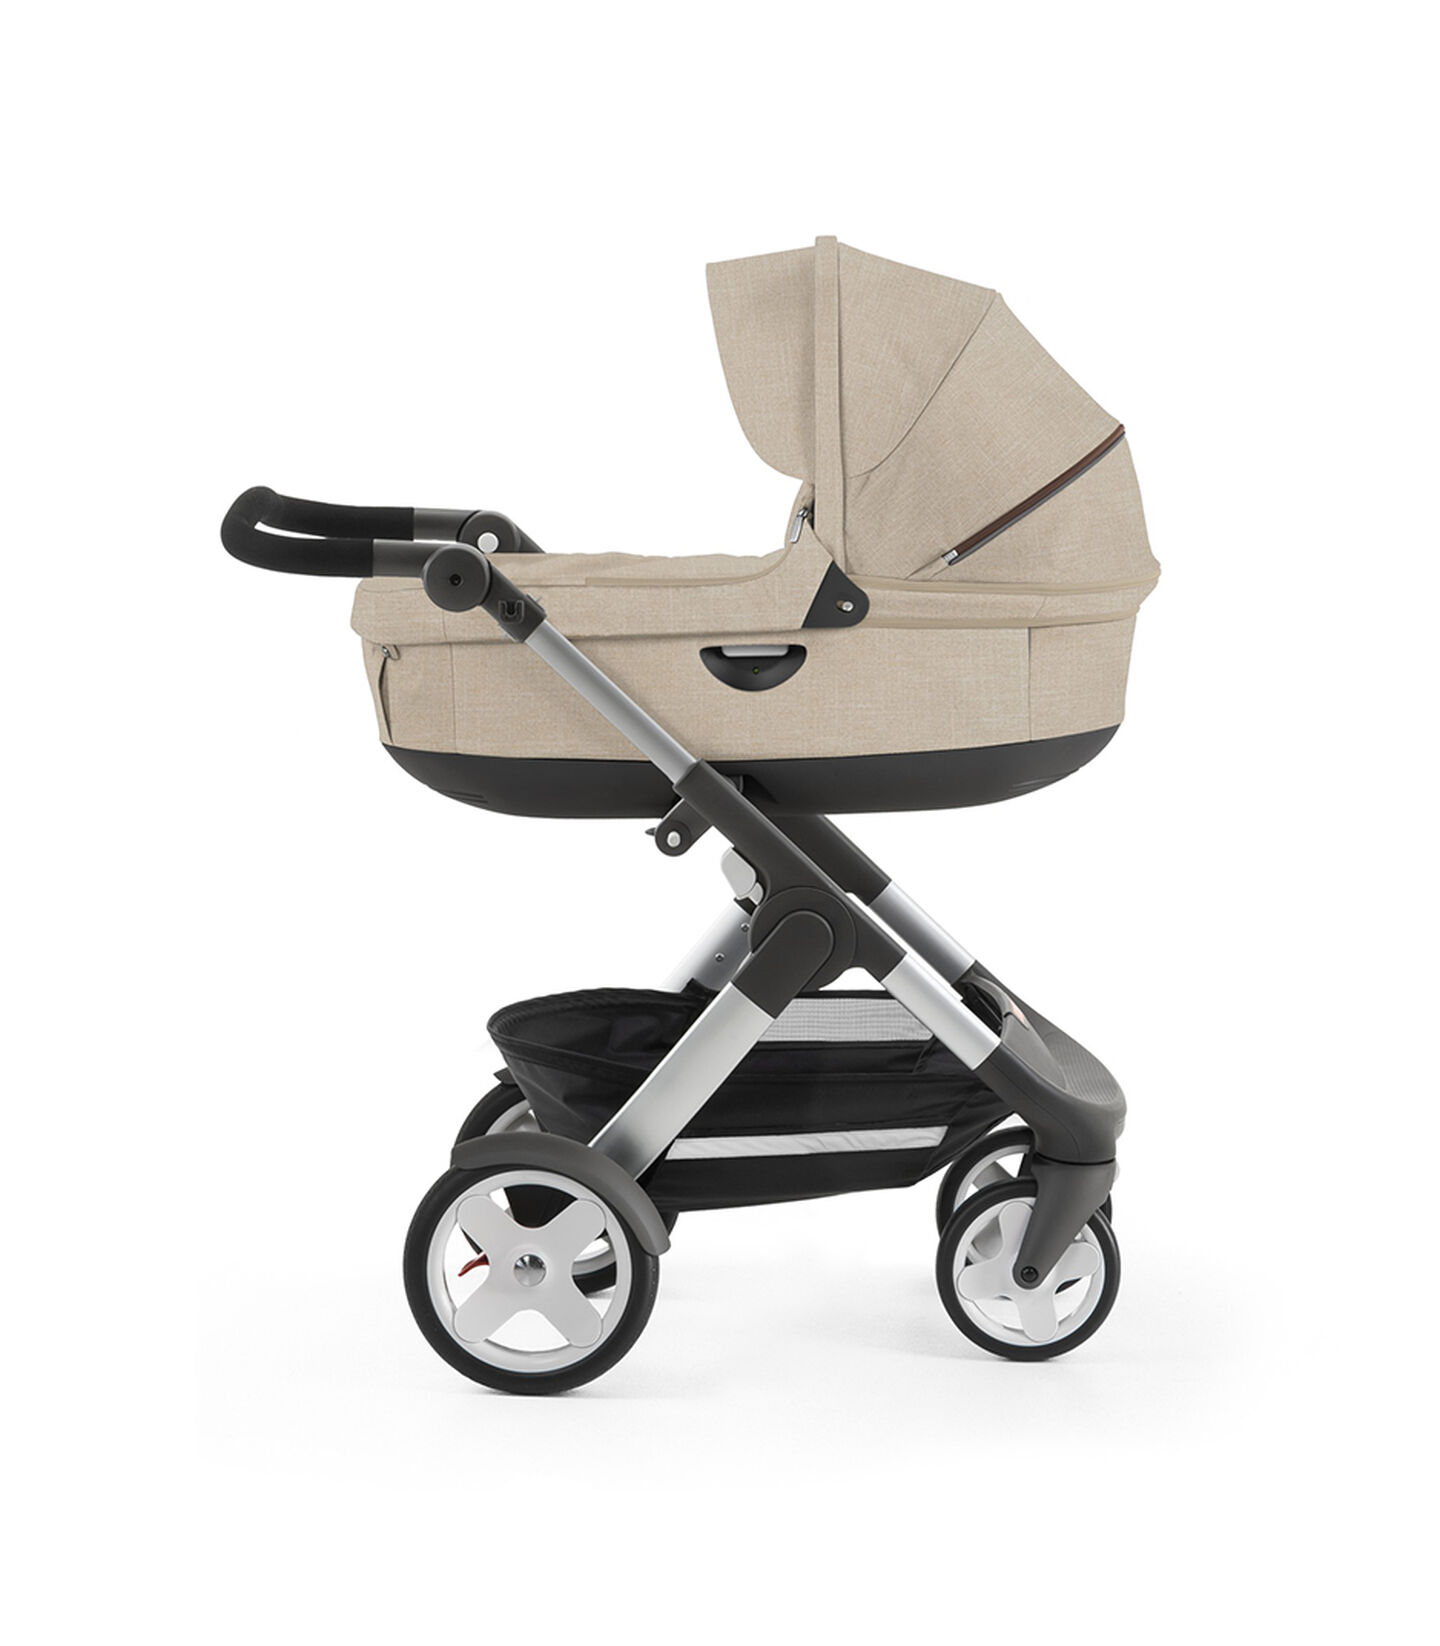 Stokke® Trailz™ with Stokke® Stroller Seat, Red. Classic Wheels. view 2